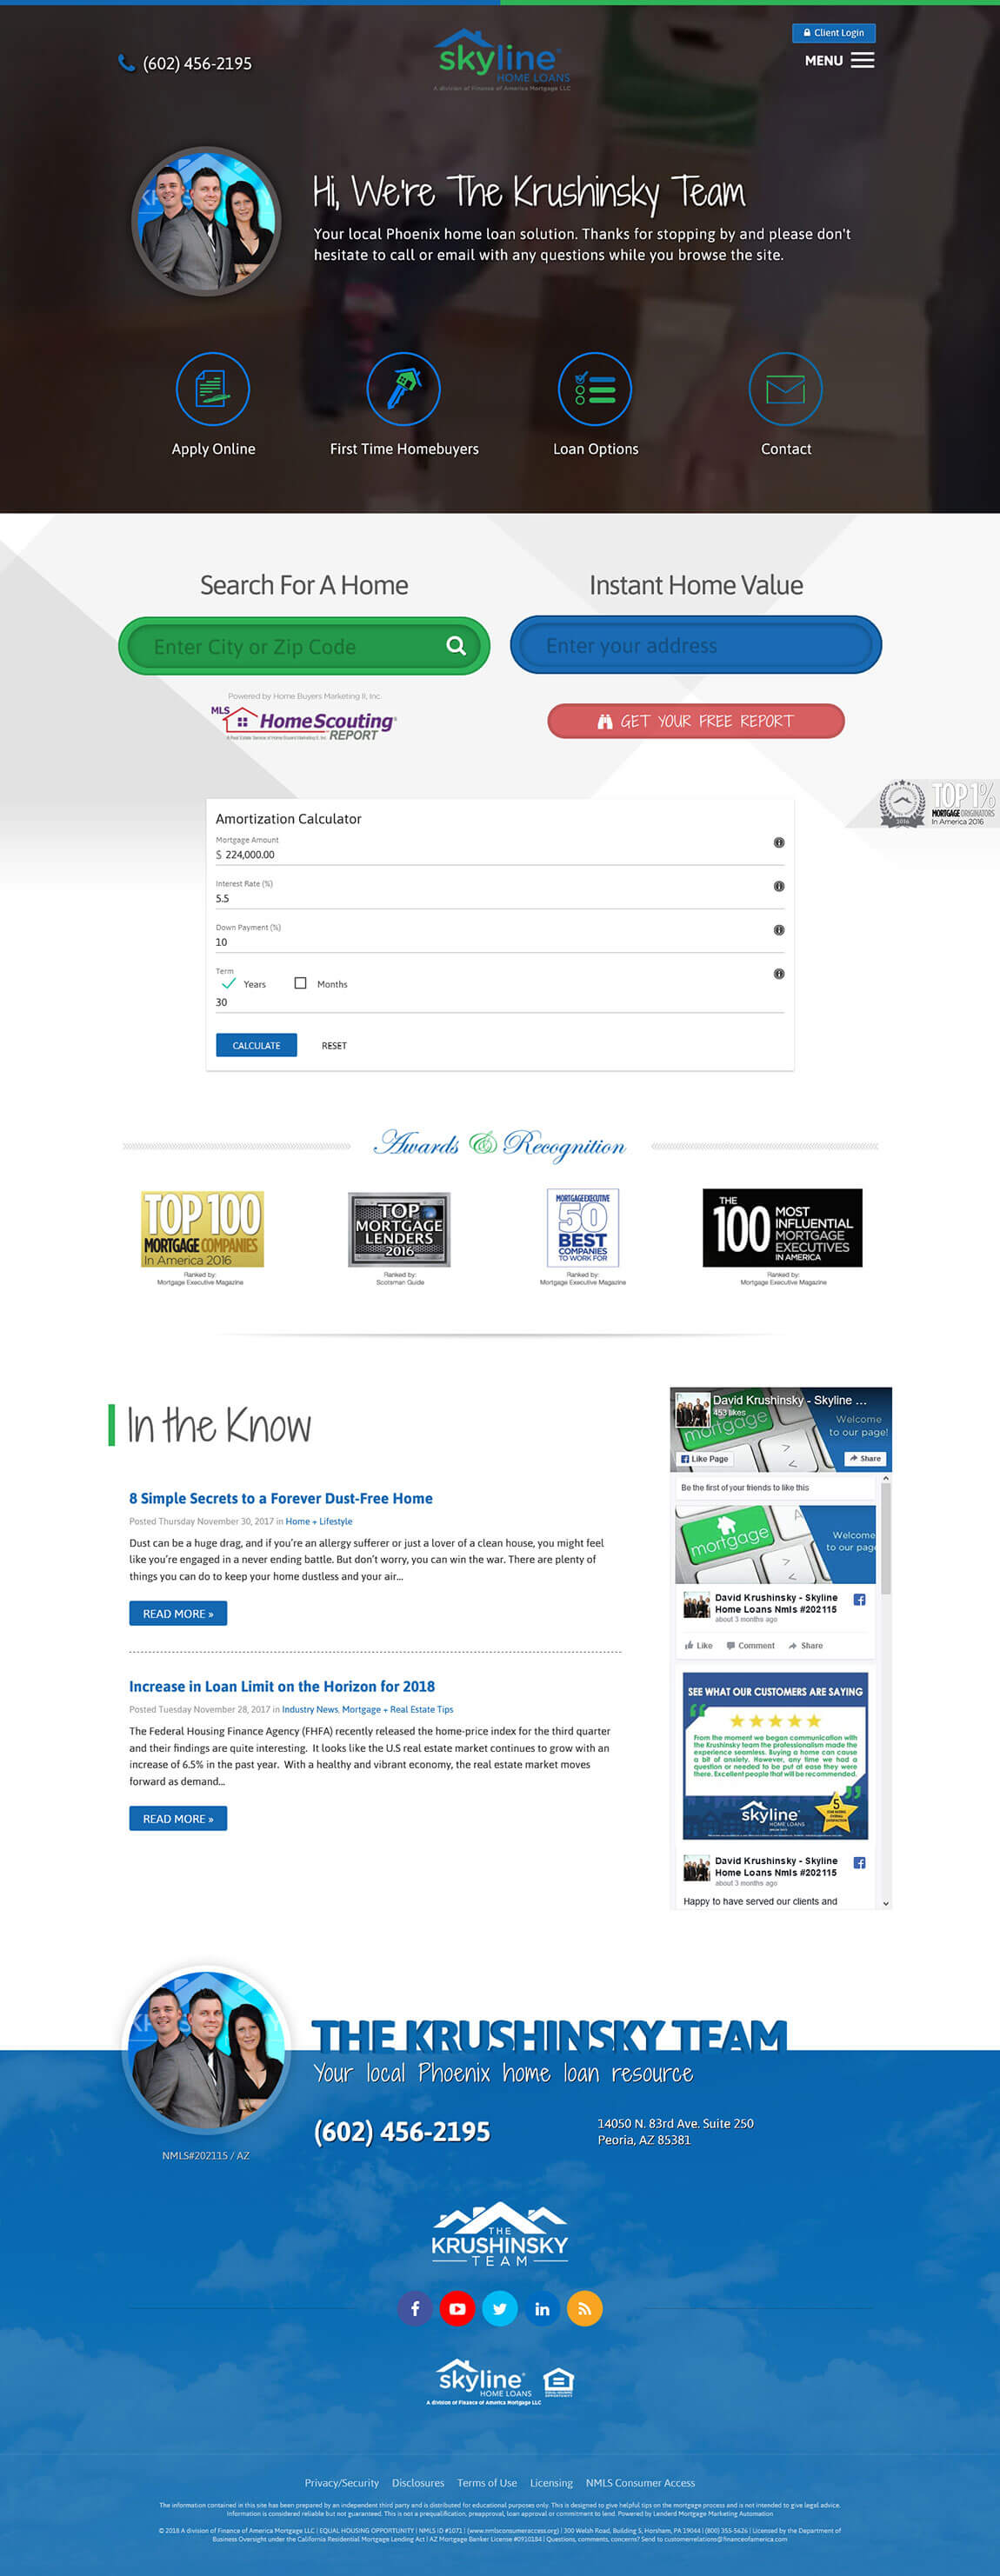 Skyline Home Loans Website Design